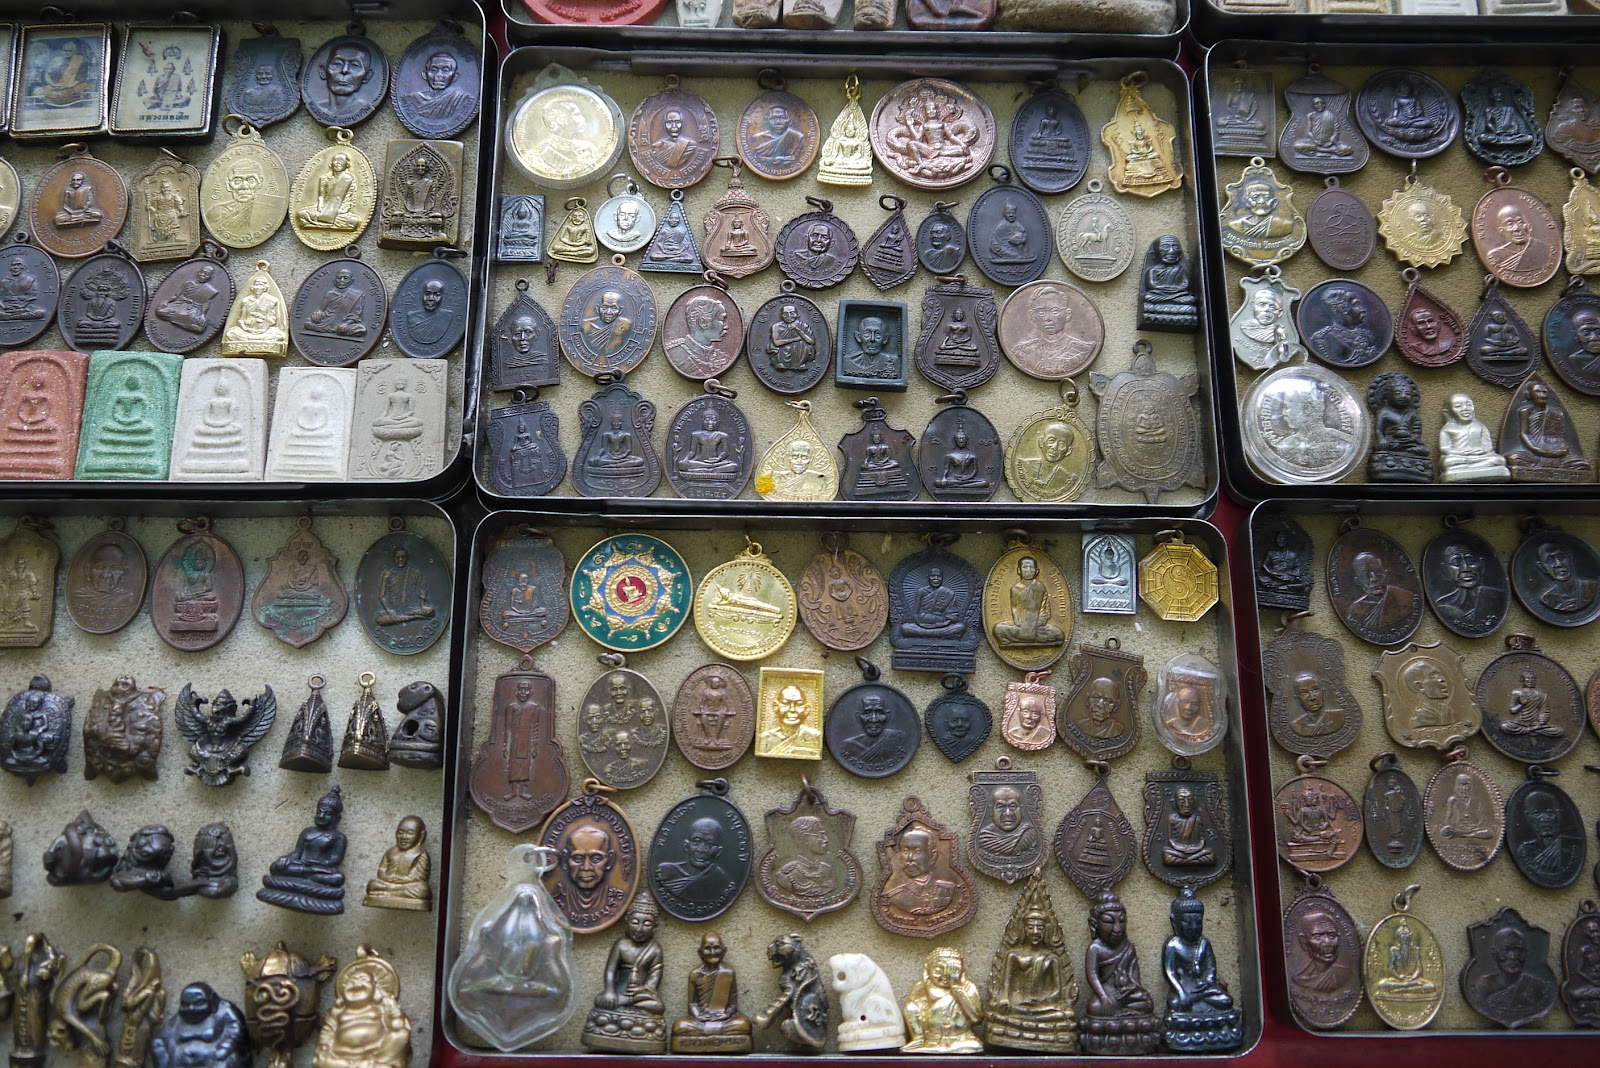 Fifties World: Amulet market - Bangkok